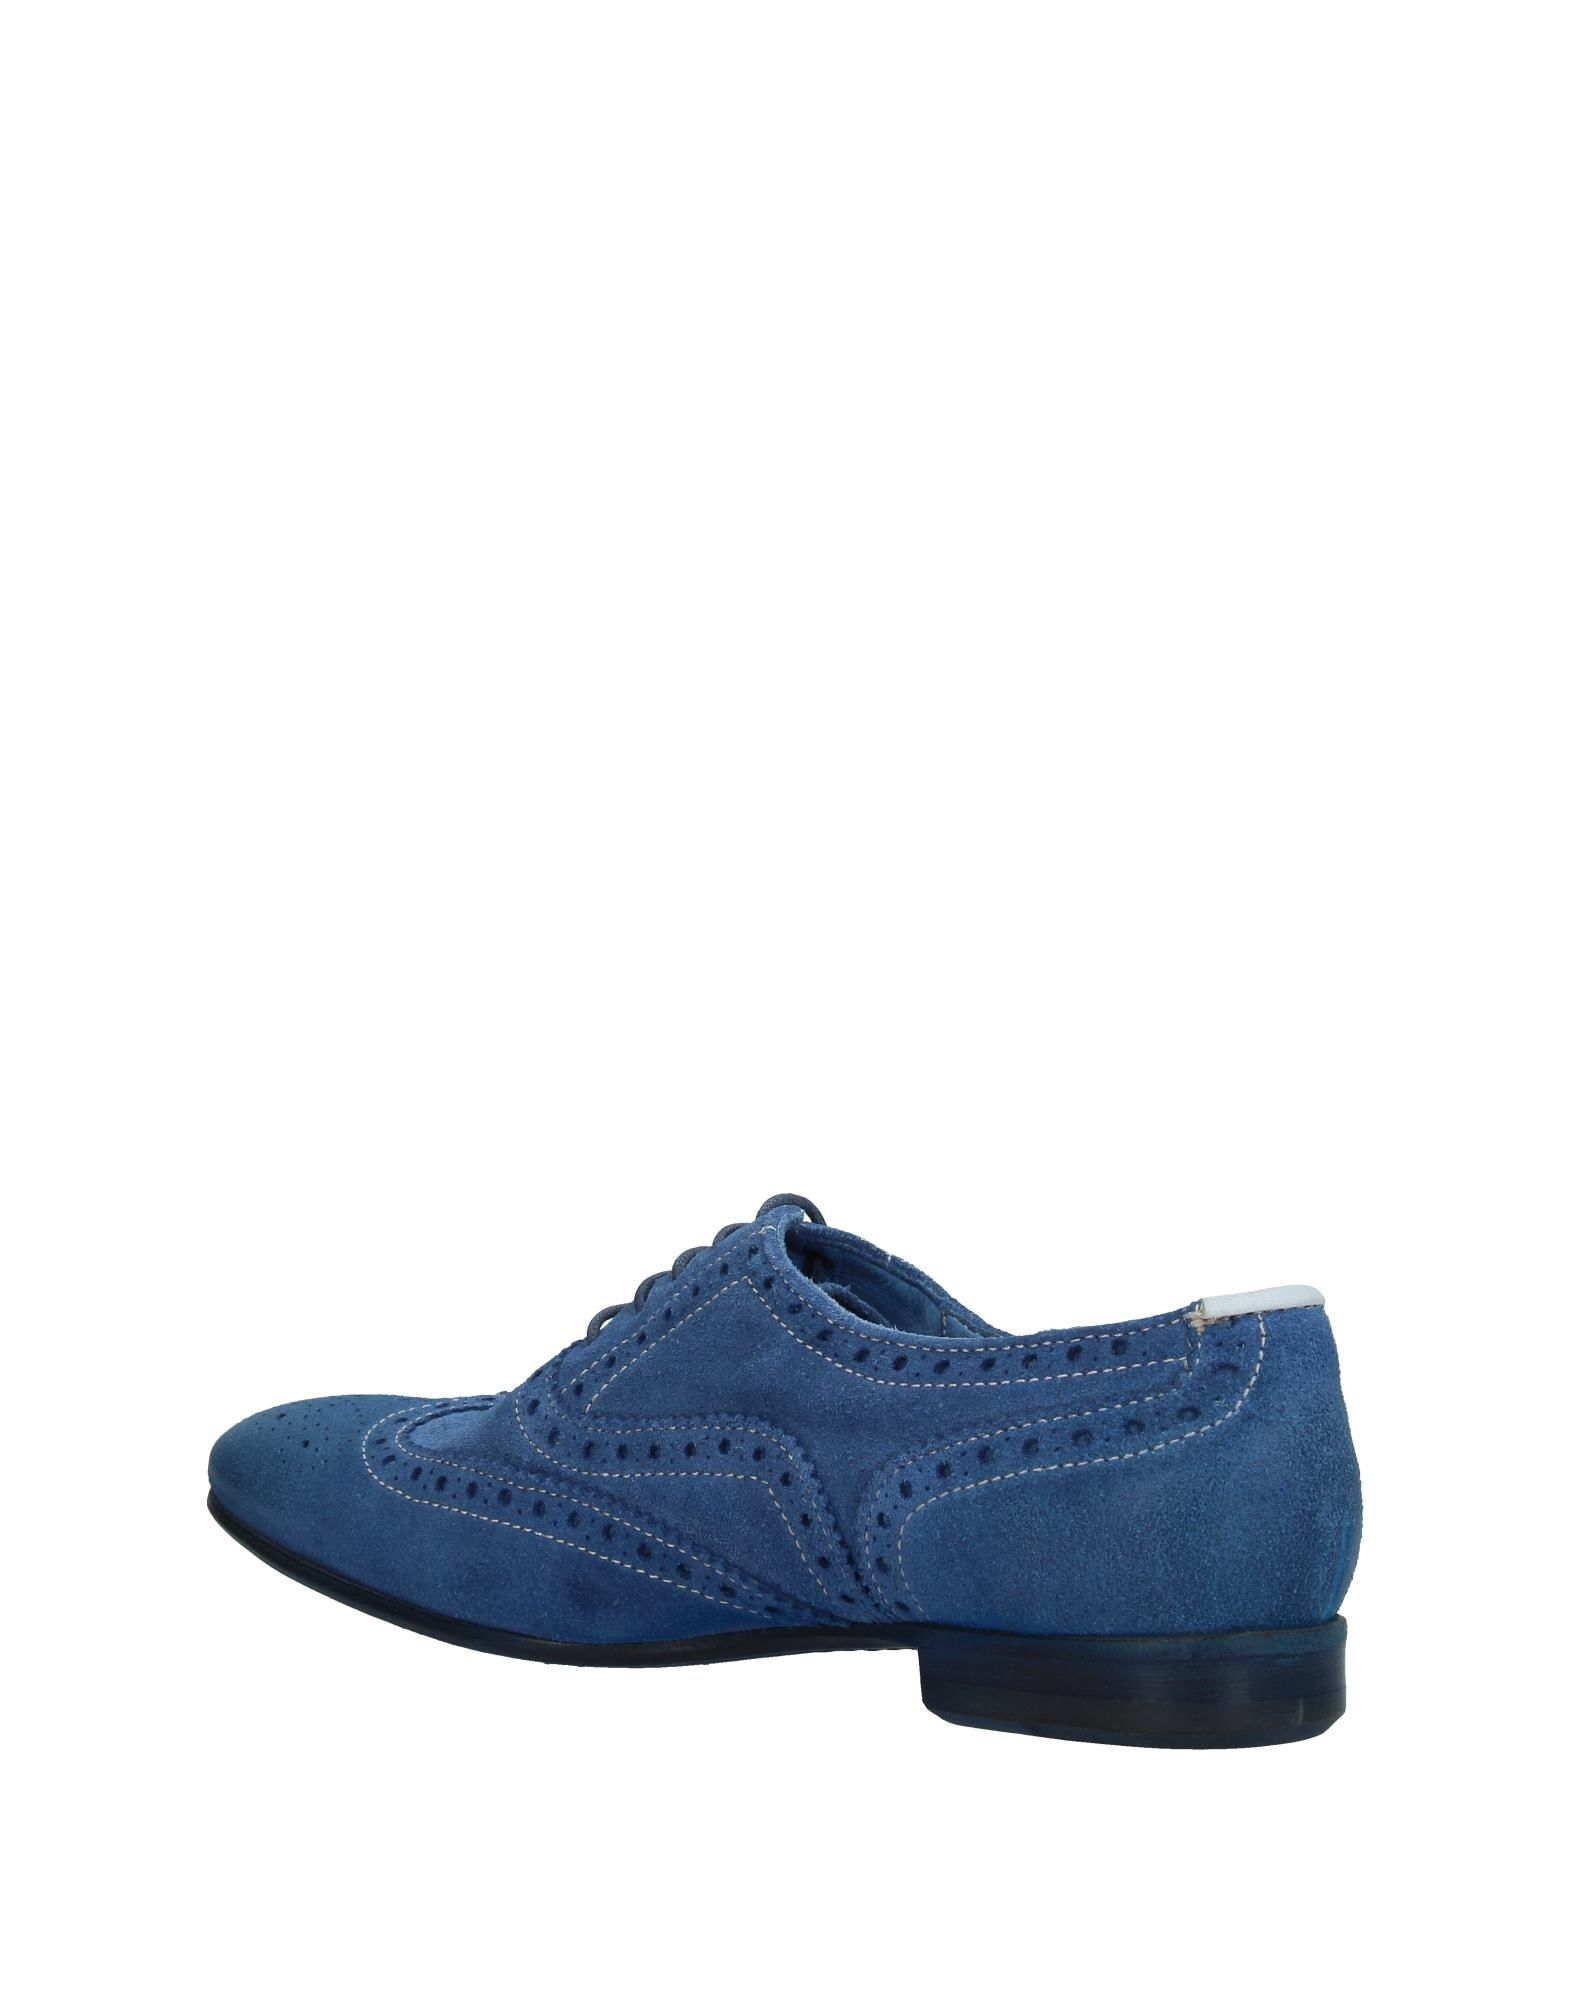 Chaussures À Lacets Men Only Paul Smith Femme - Chaussures À Lacets Men Only Paul Smith sur